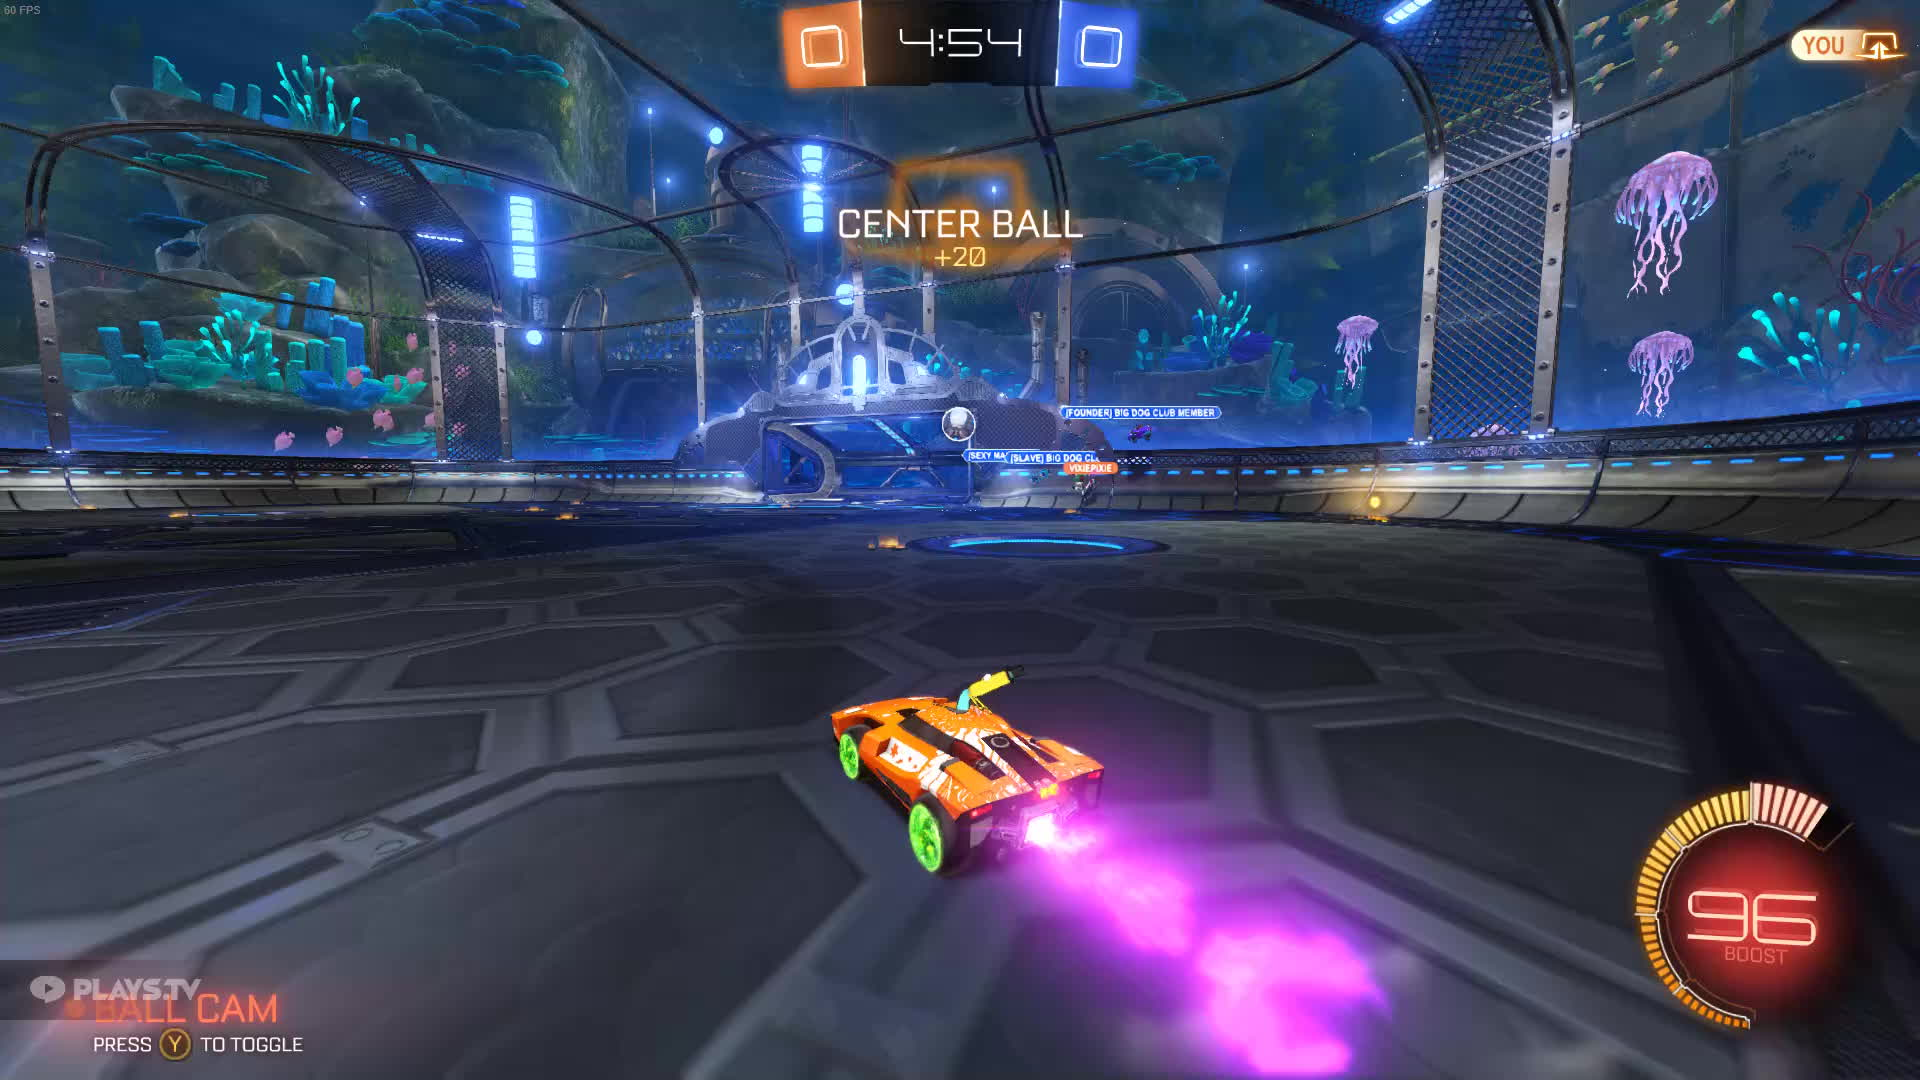 Rocket League, rocketleague, Threading the needle GIFs